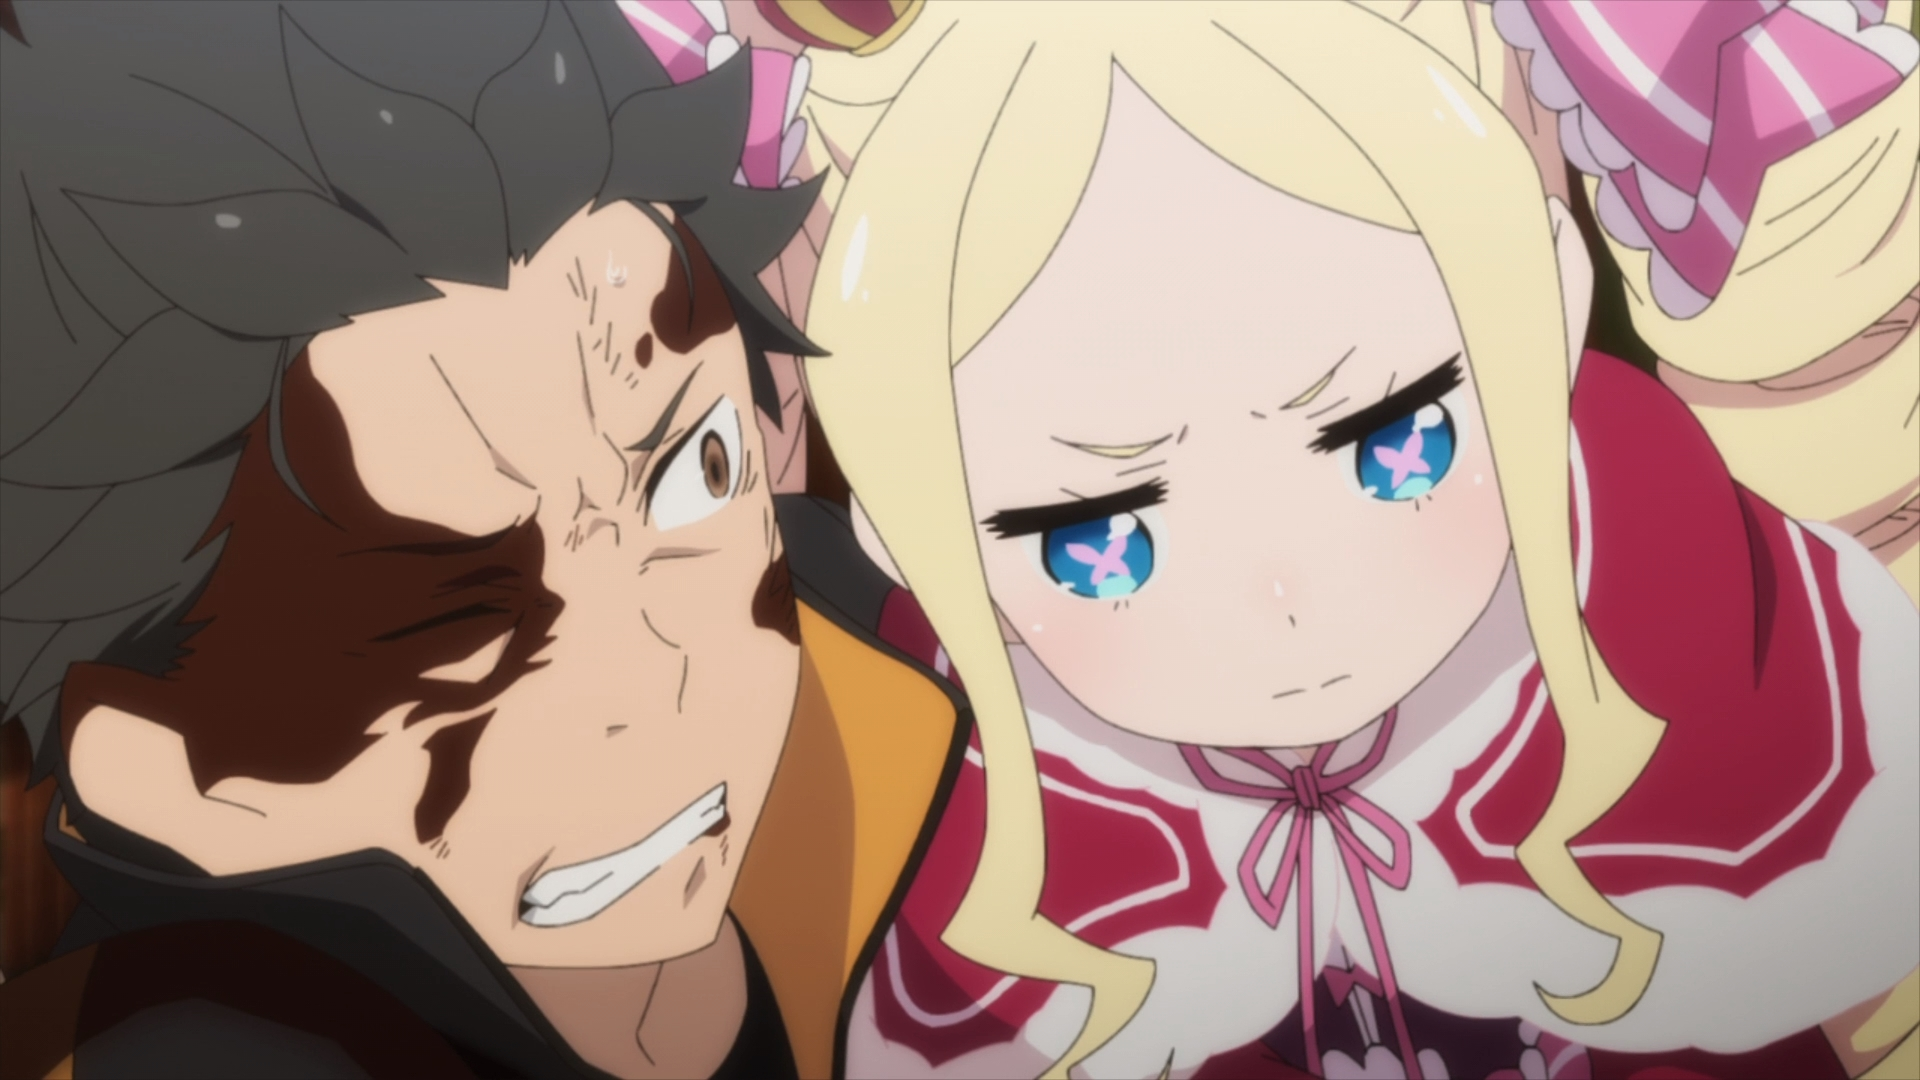 Review – Re:Zero S2 Episode 07